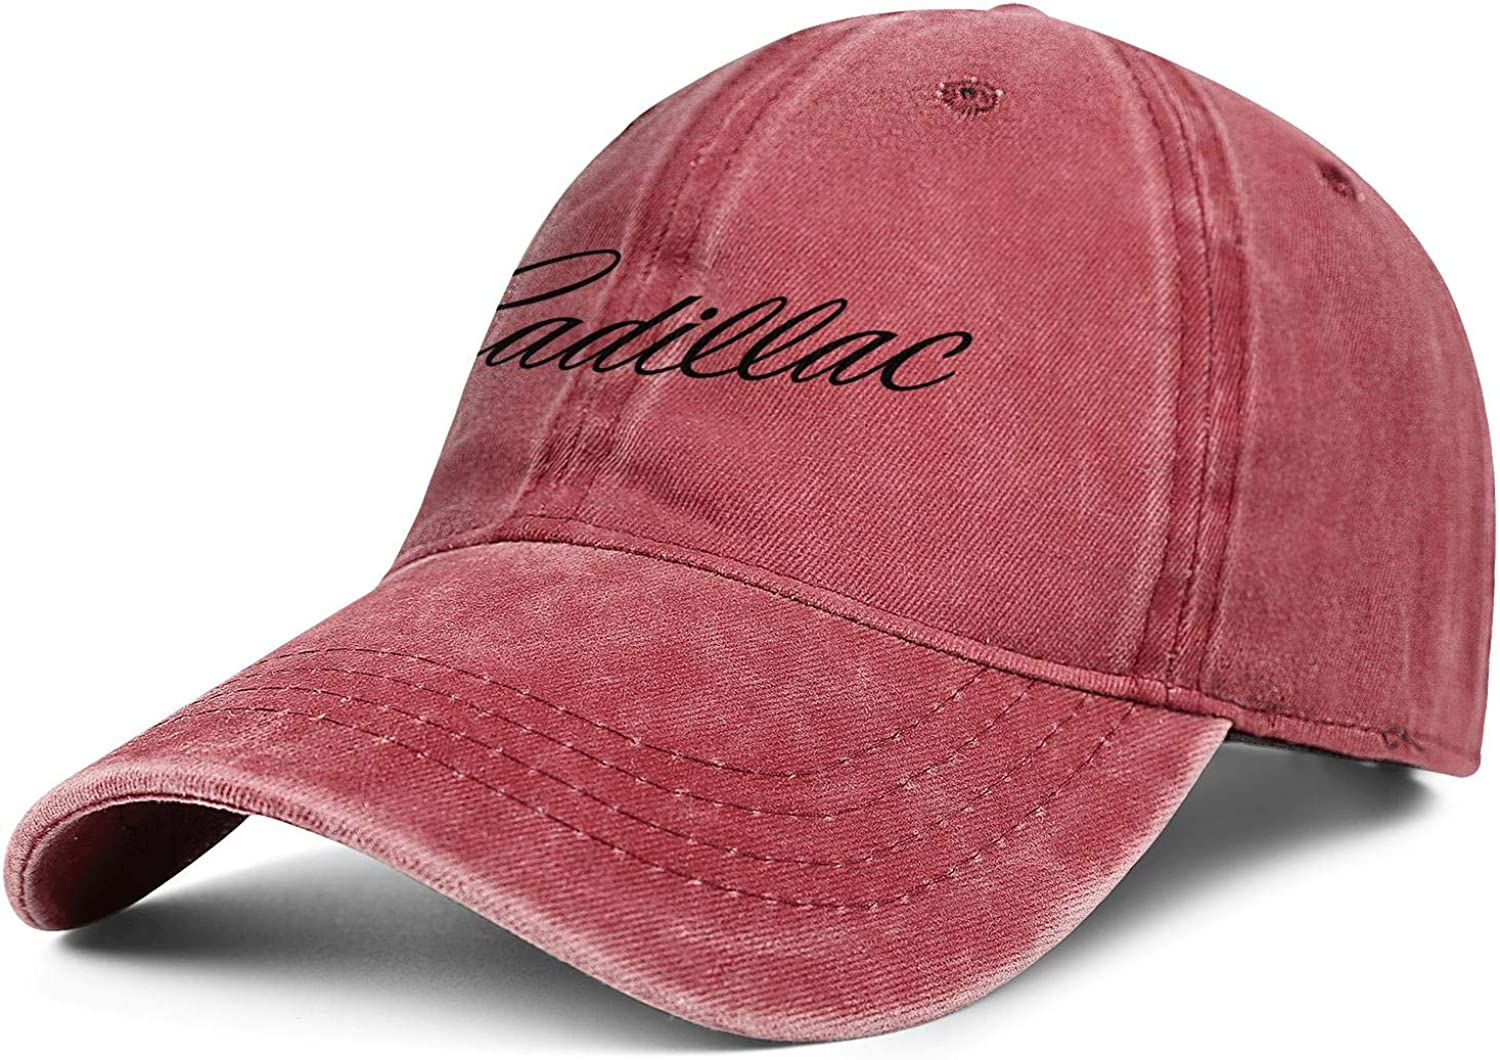 Yoursport Baseball Cap,Unisex Adjustable Hat Travel Cap for Man,Women Red Fit Cadillac Accessories